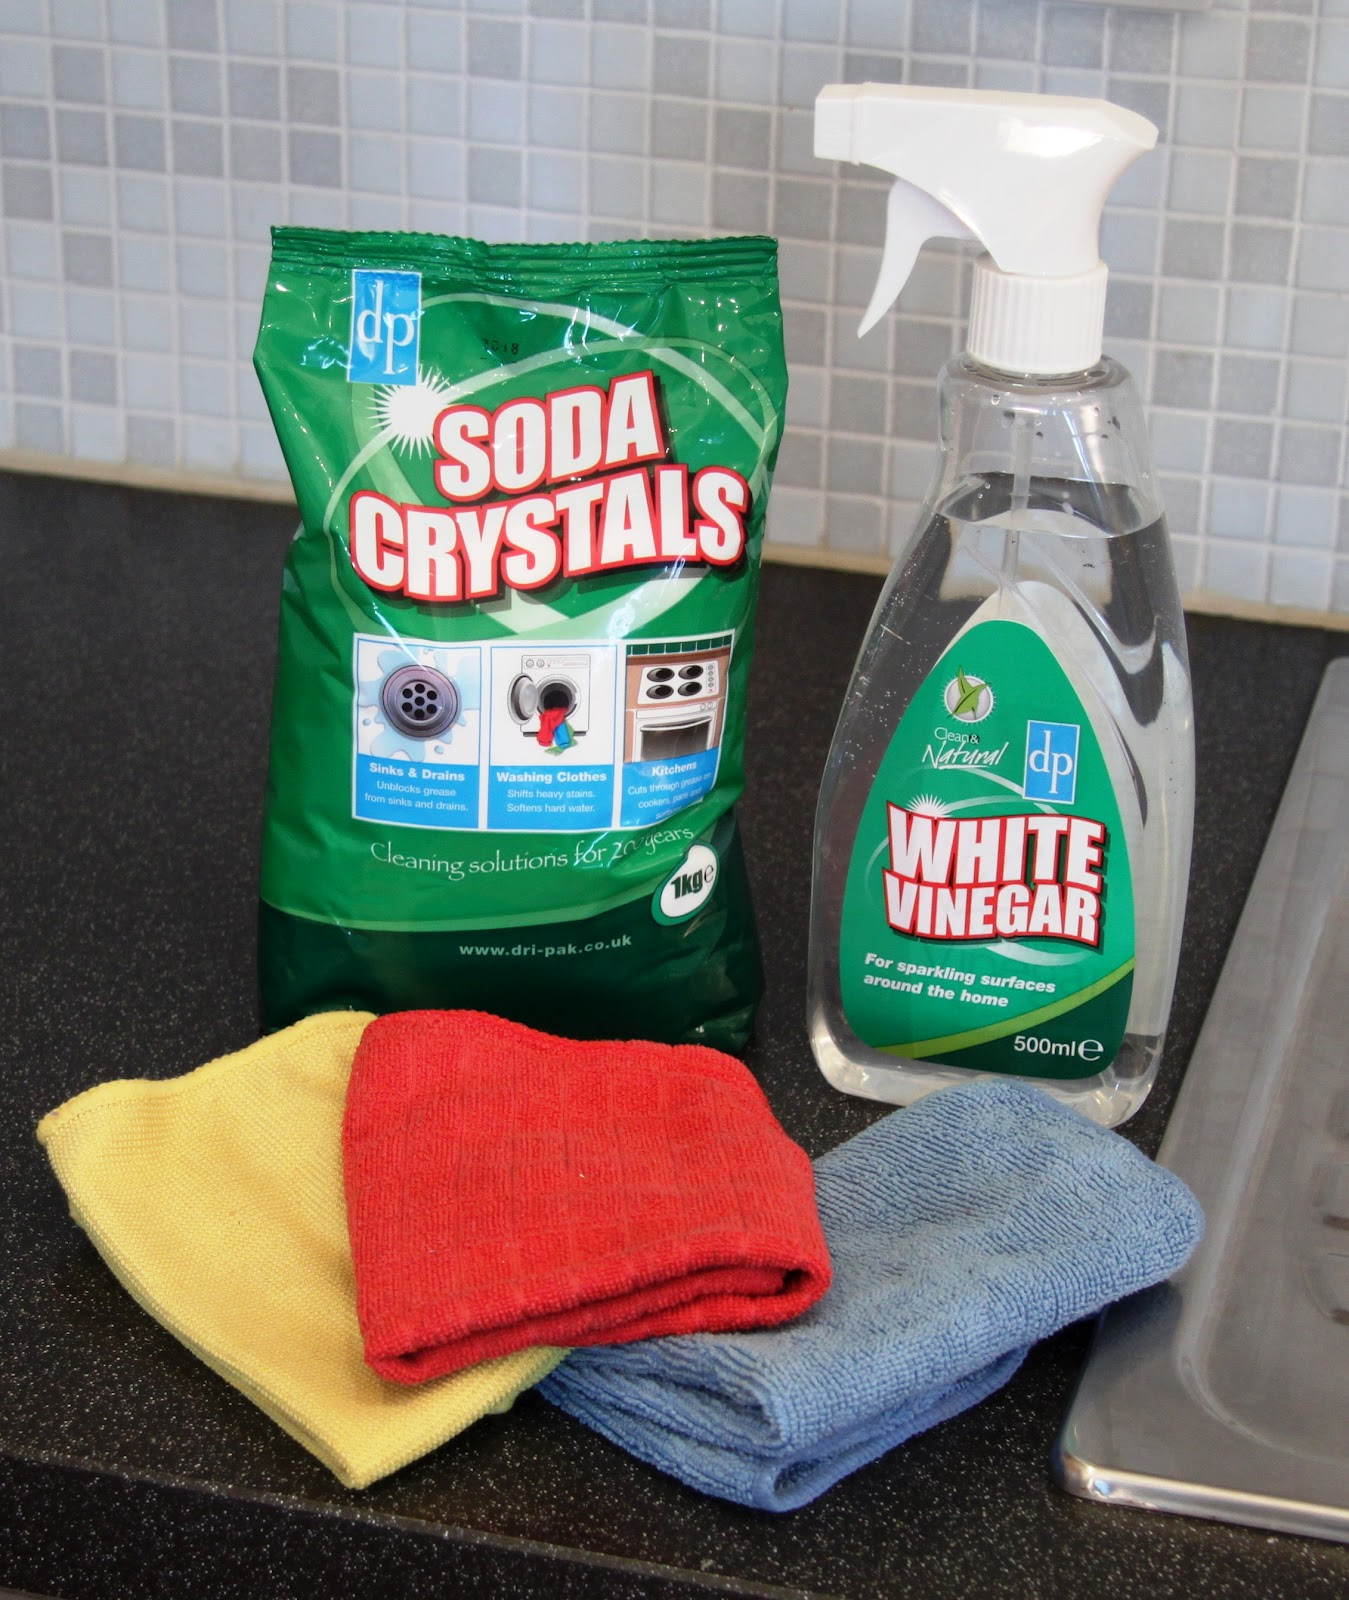 How To Clean Microfibre Cloths Dri Pak